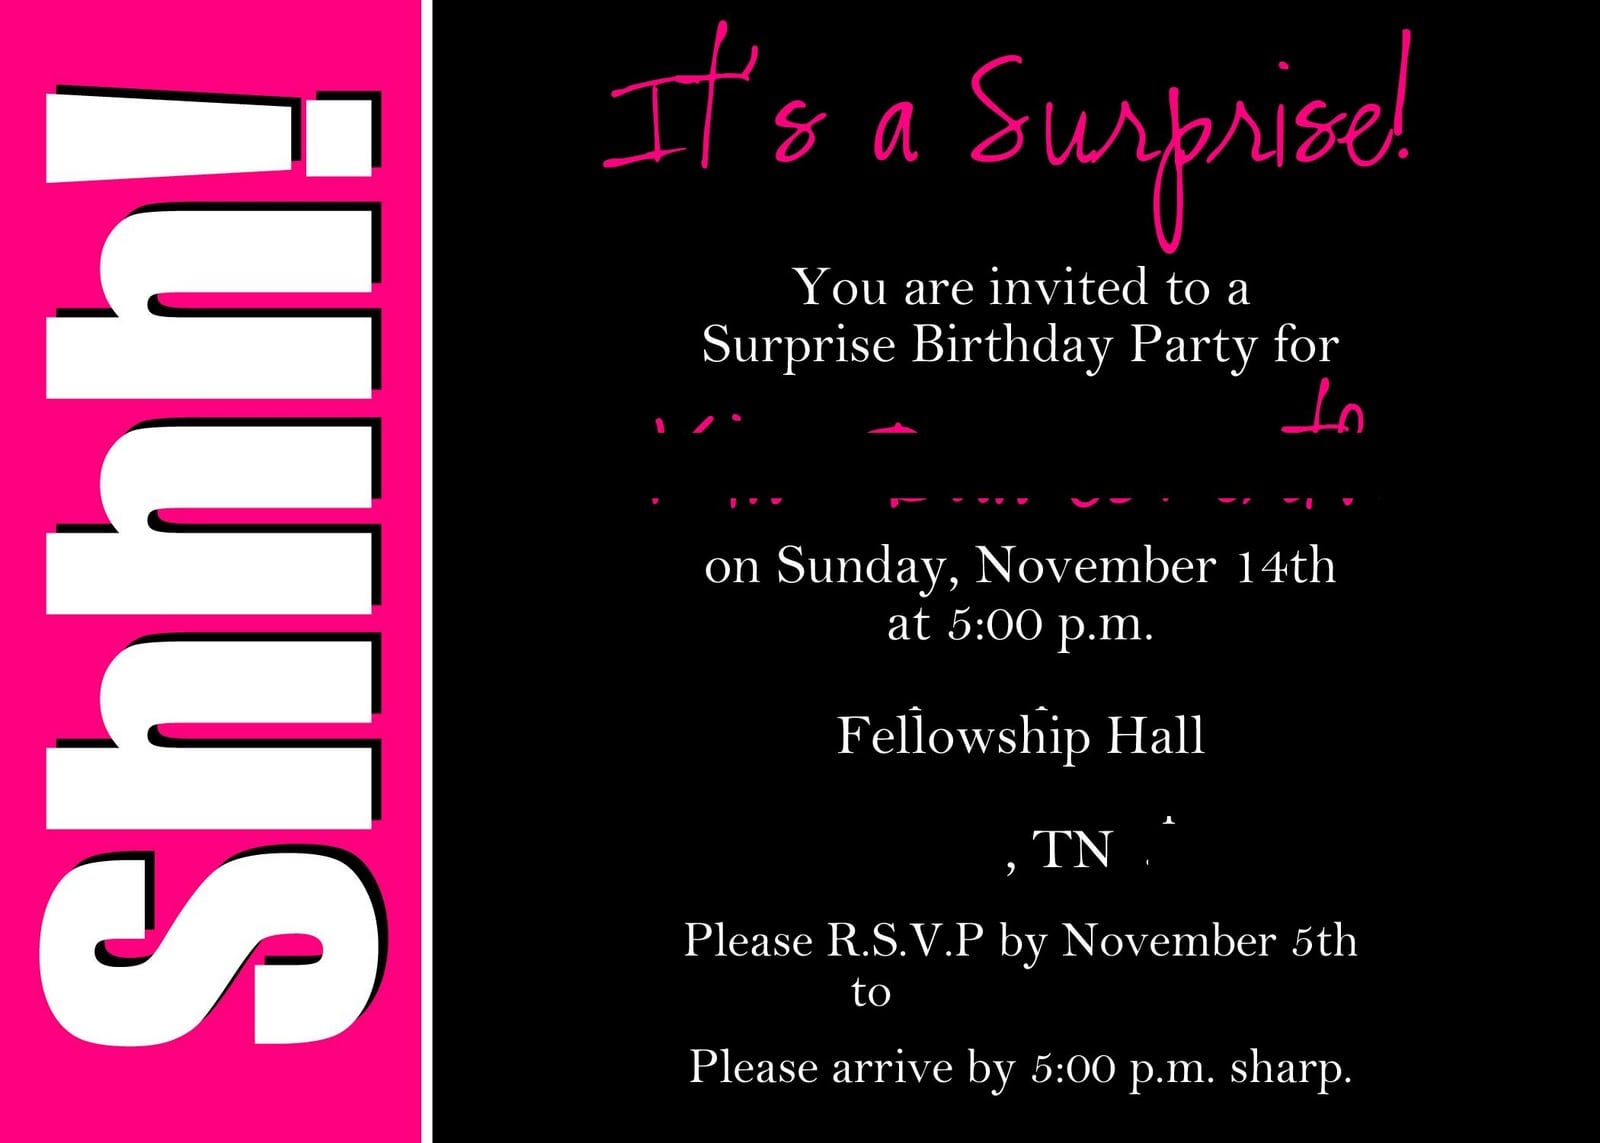 Surprise 60th Birthday Party Invitation Wording Mickey Mouse – Surprise Party Invite Wording